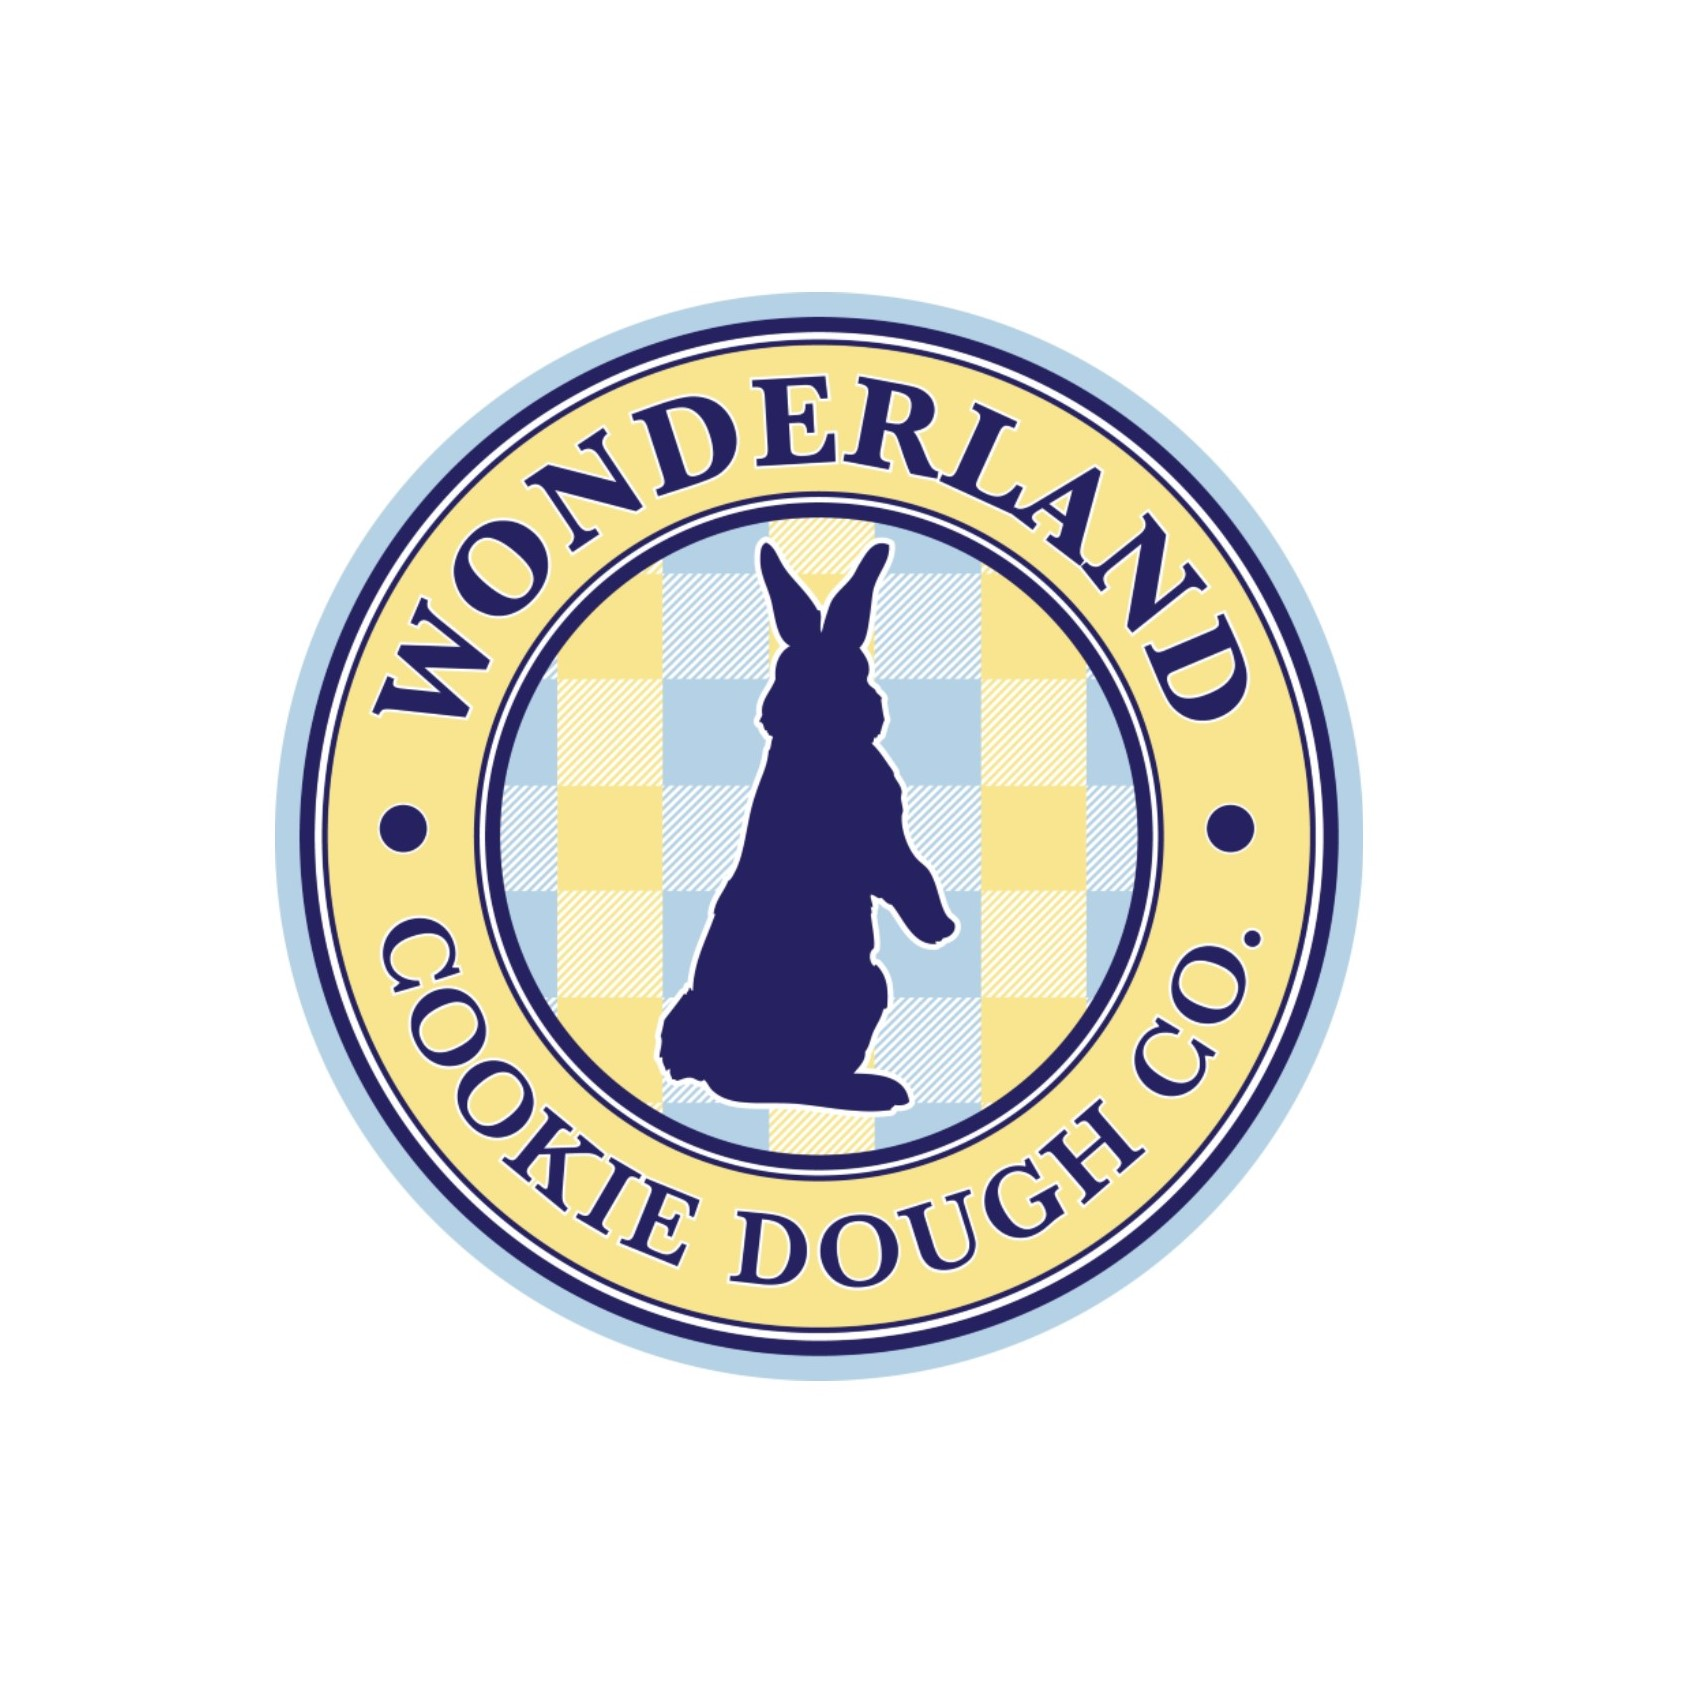 Wonderland Cookie Dough